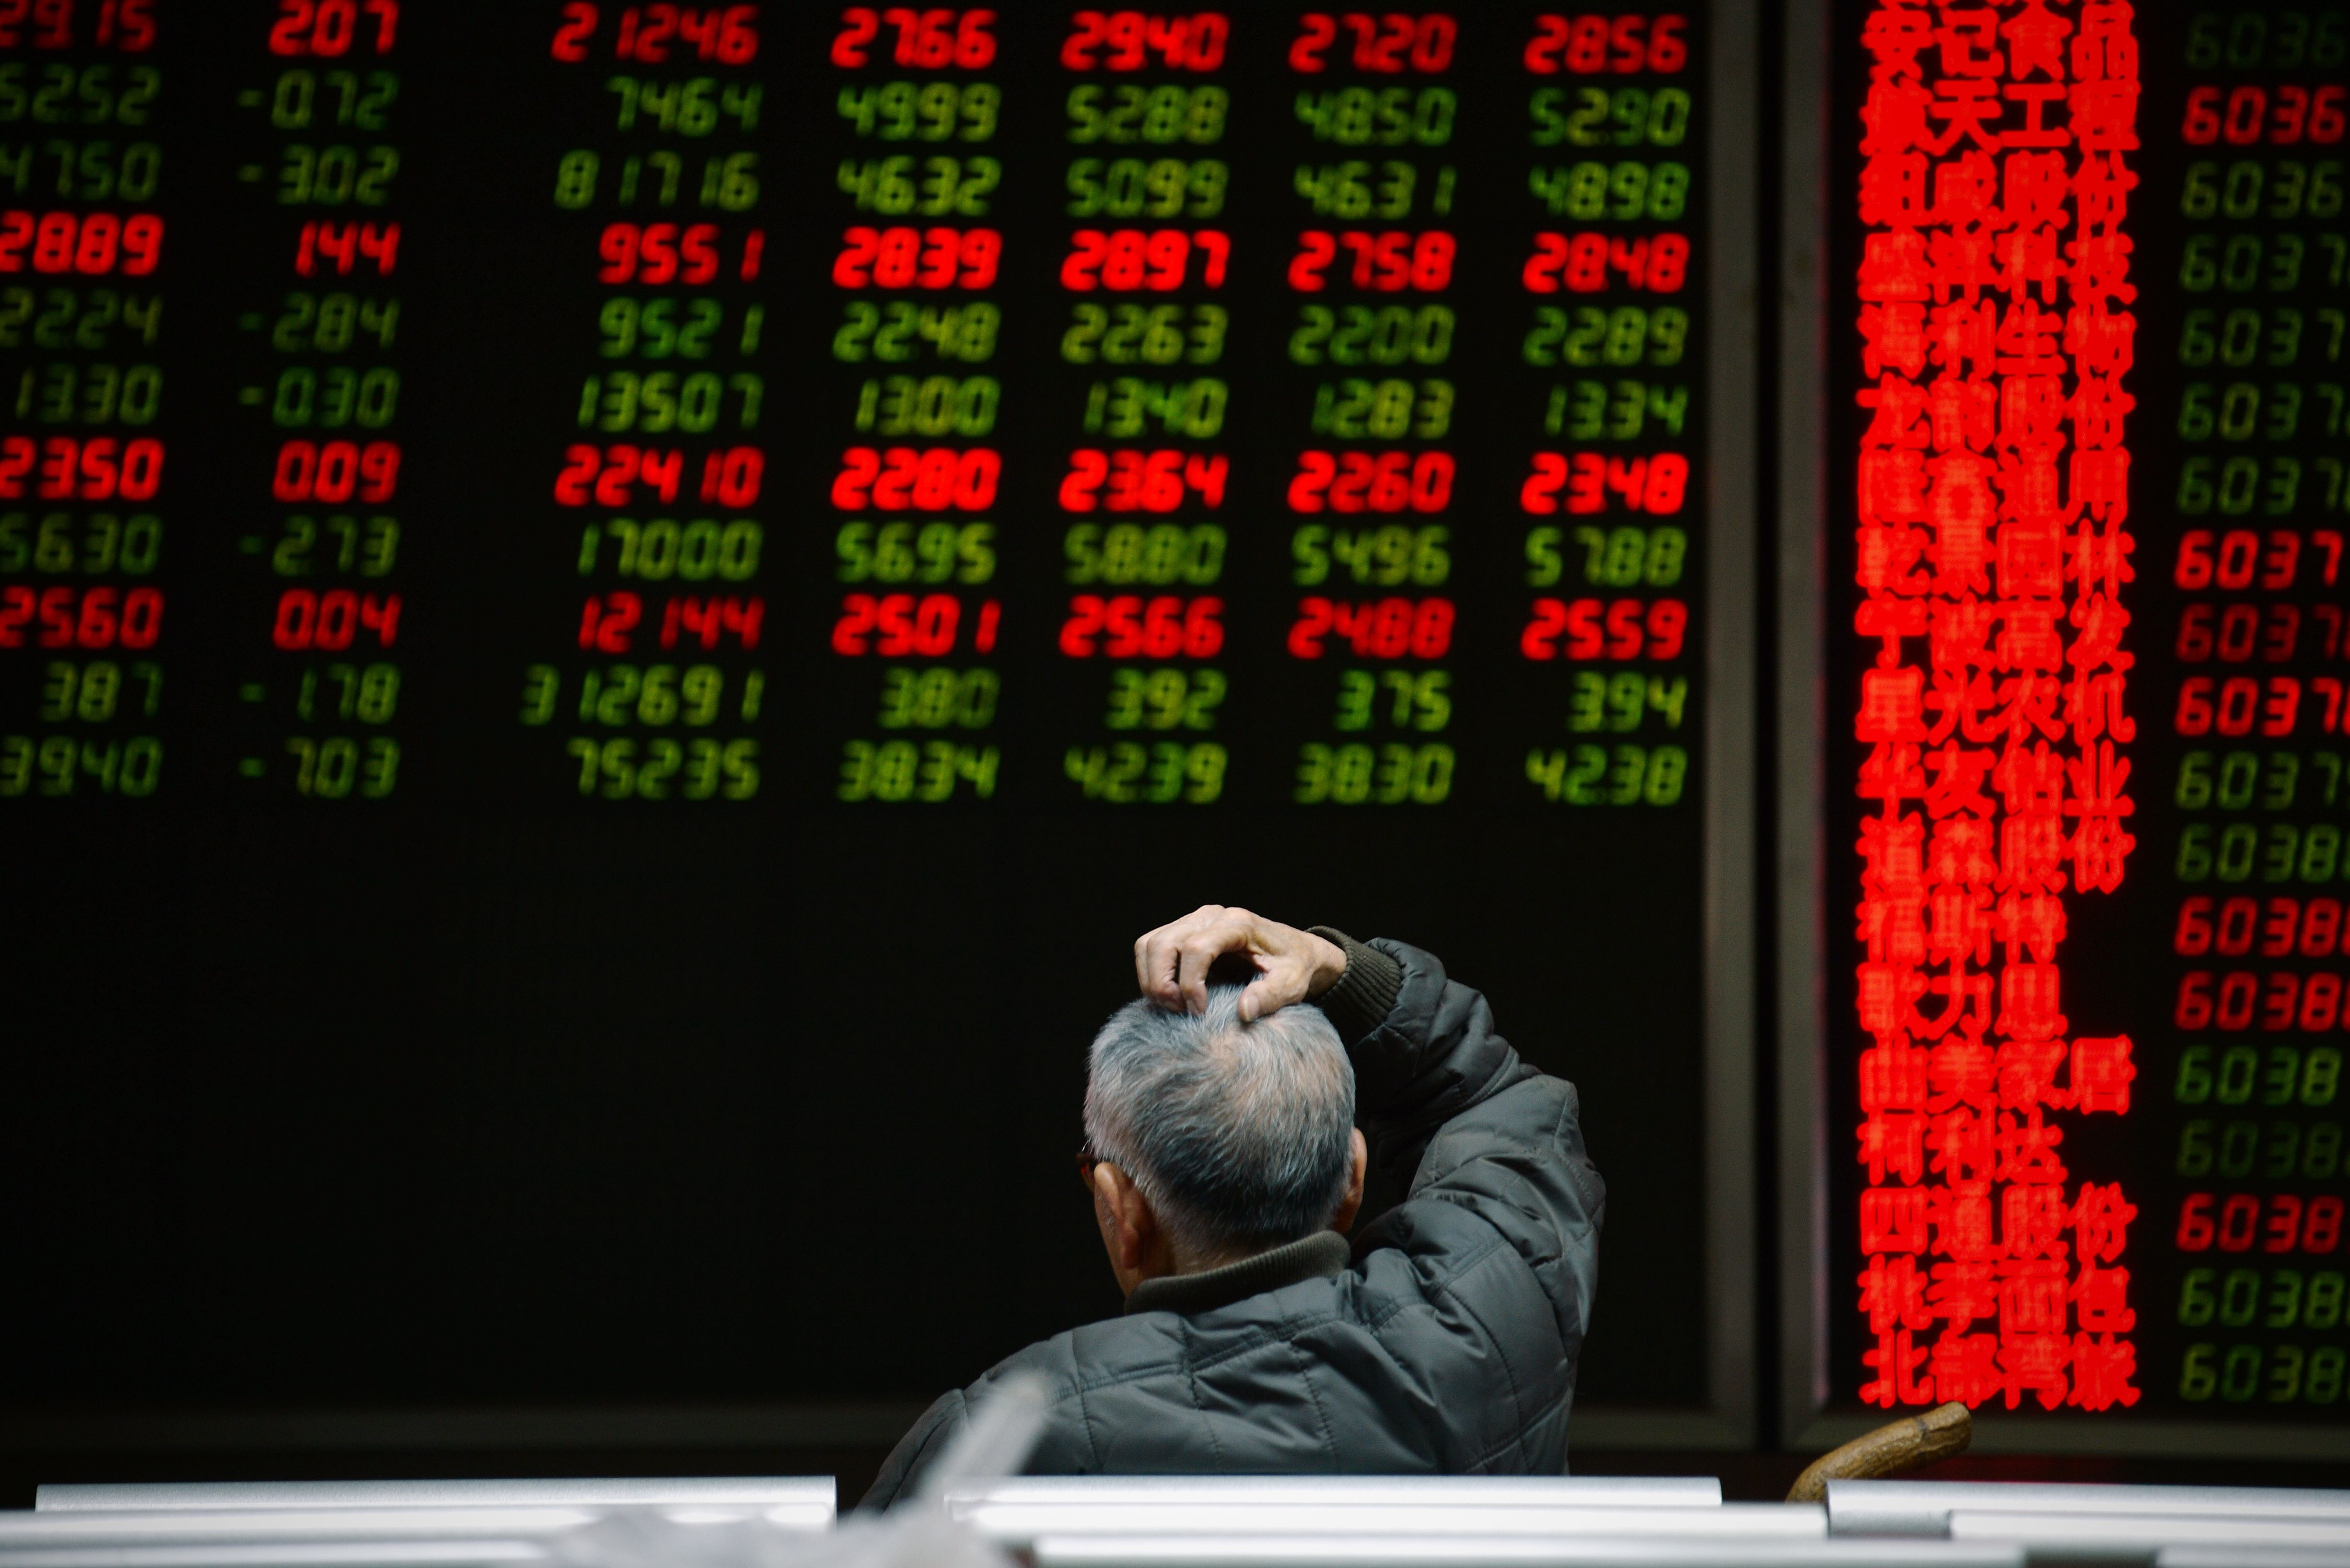 An investor looks at screens showing stock market movements at a securities company in Beijing on Jan. 14, 2016.